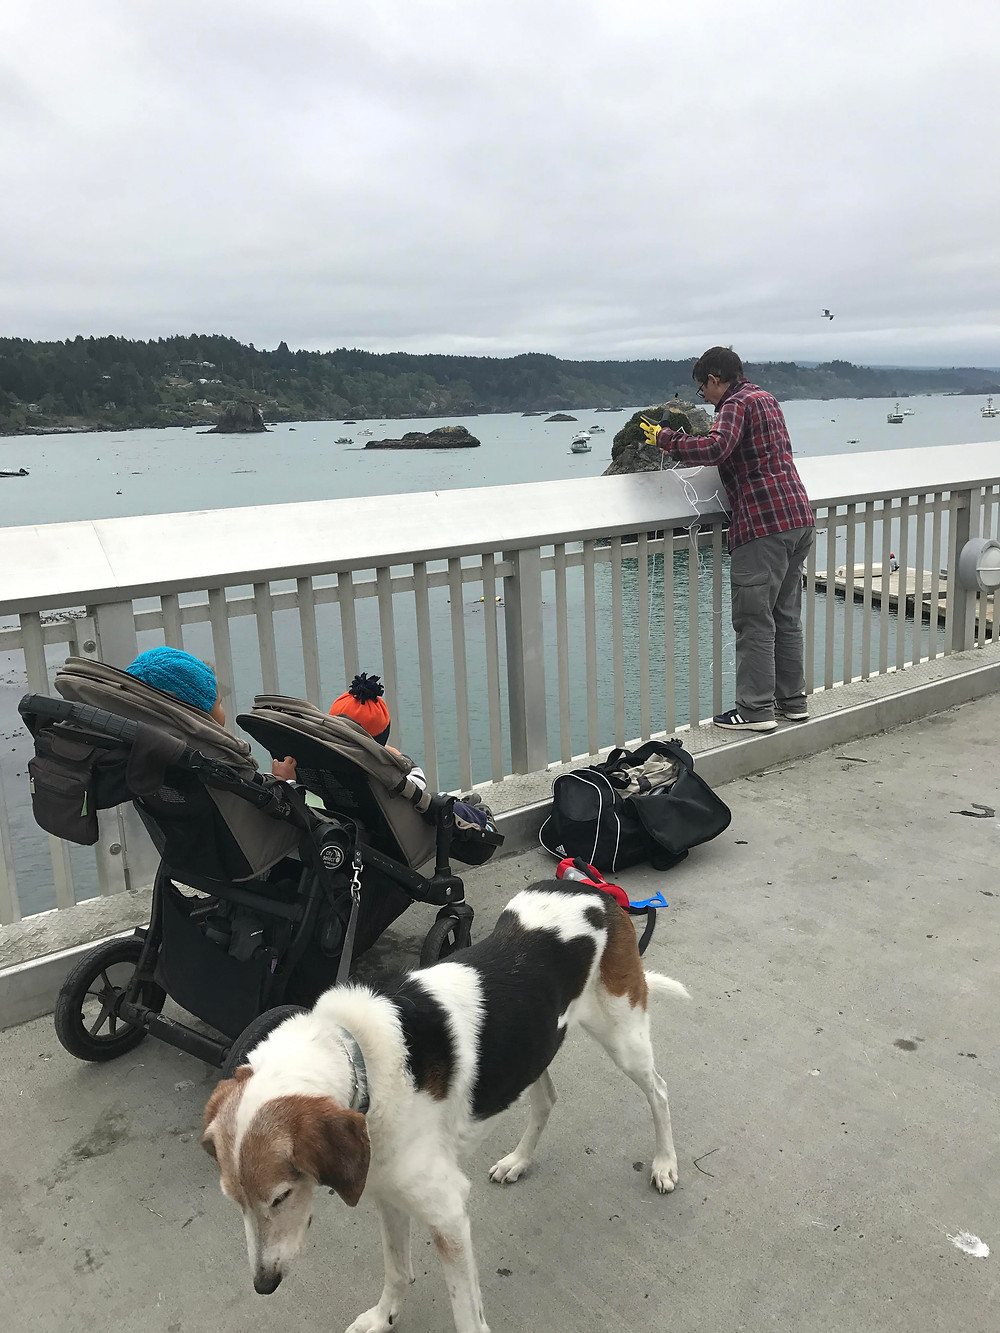 Crabbing at the pier in Trinidad, CA